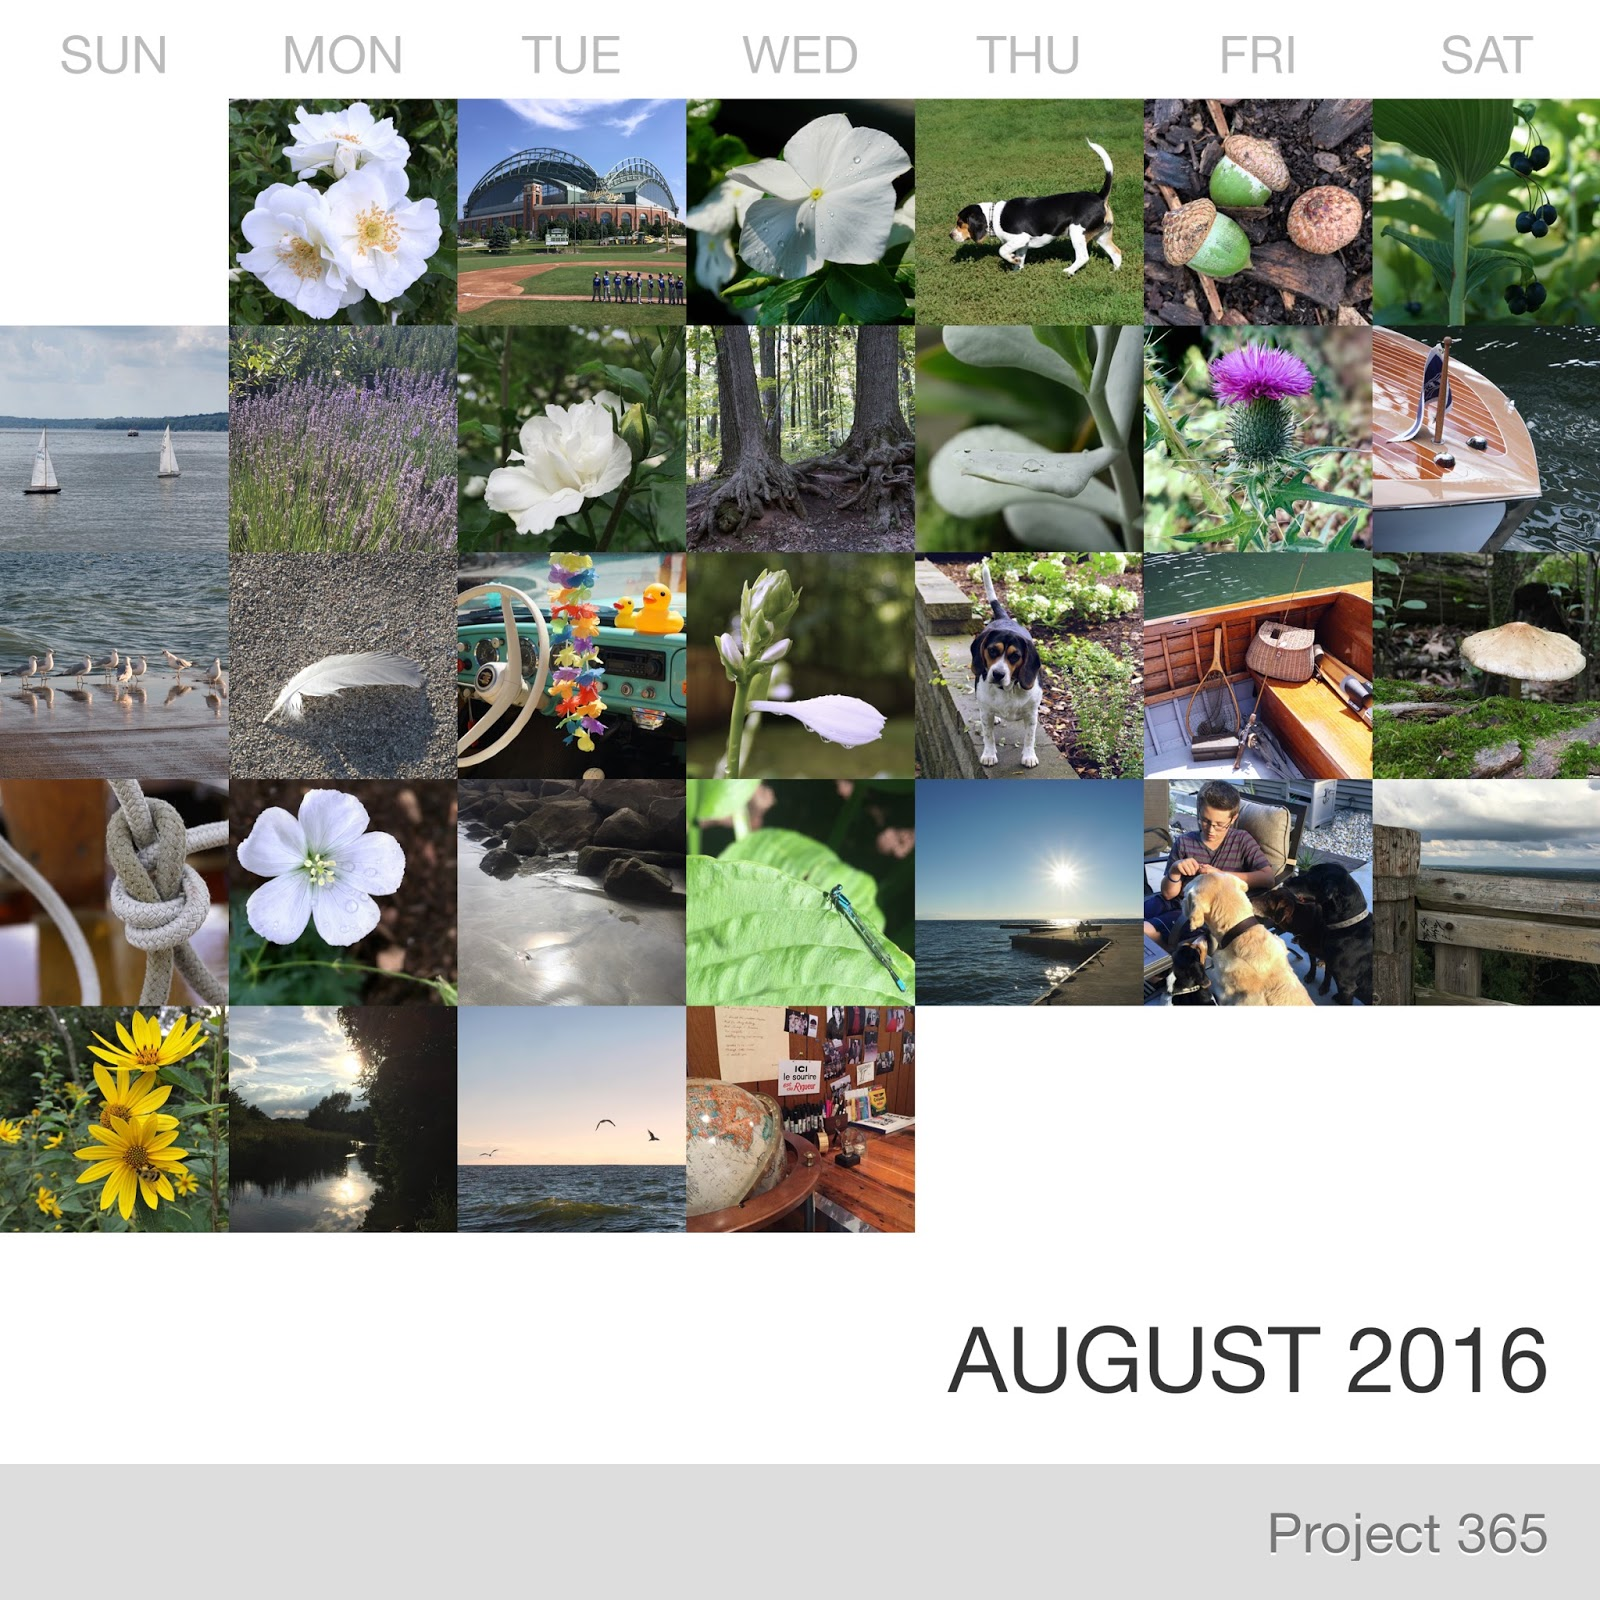 Project 365 _August-2016_Collage.jpg